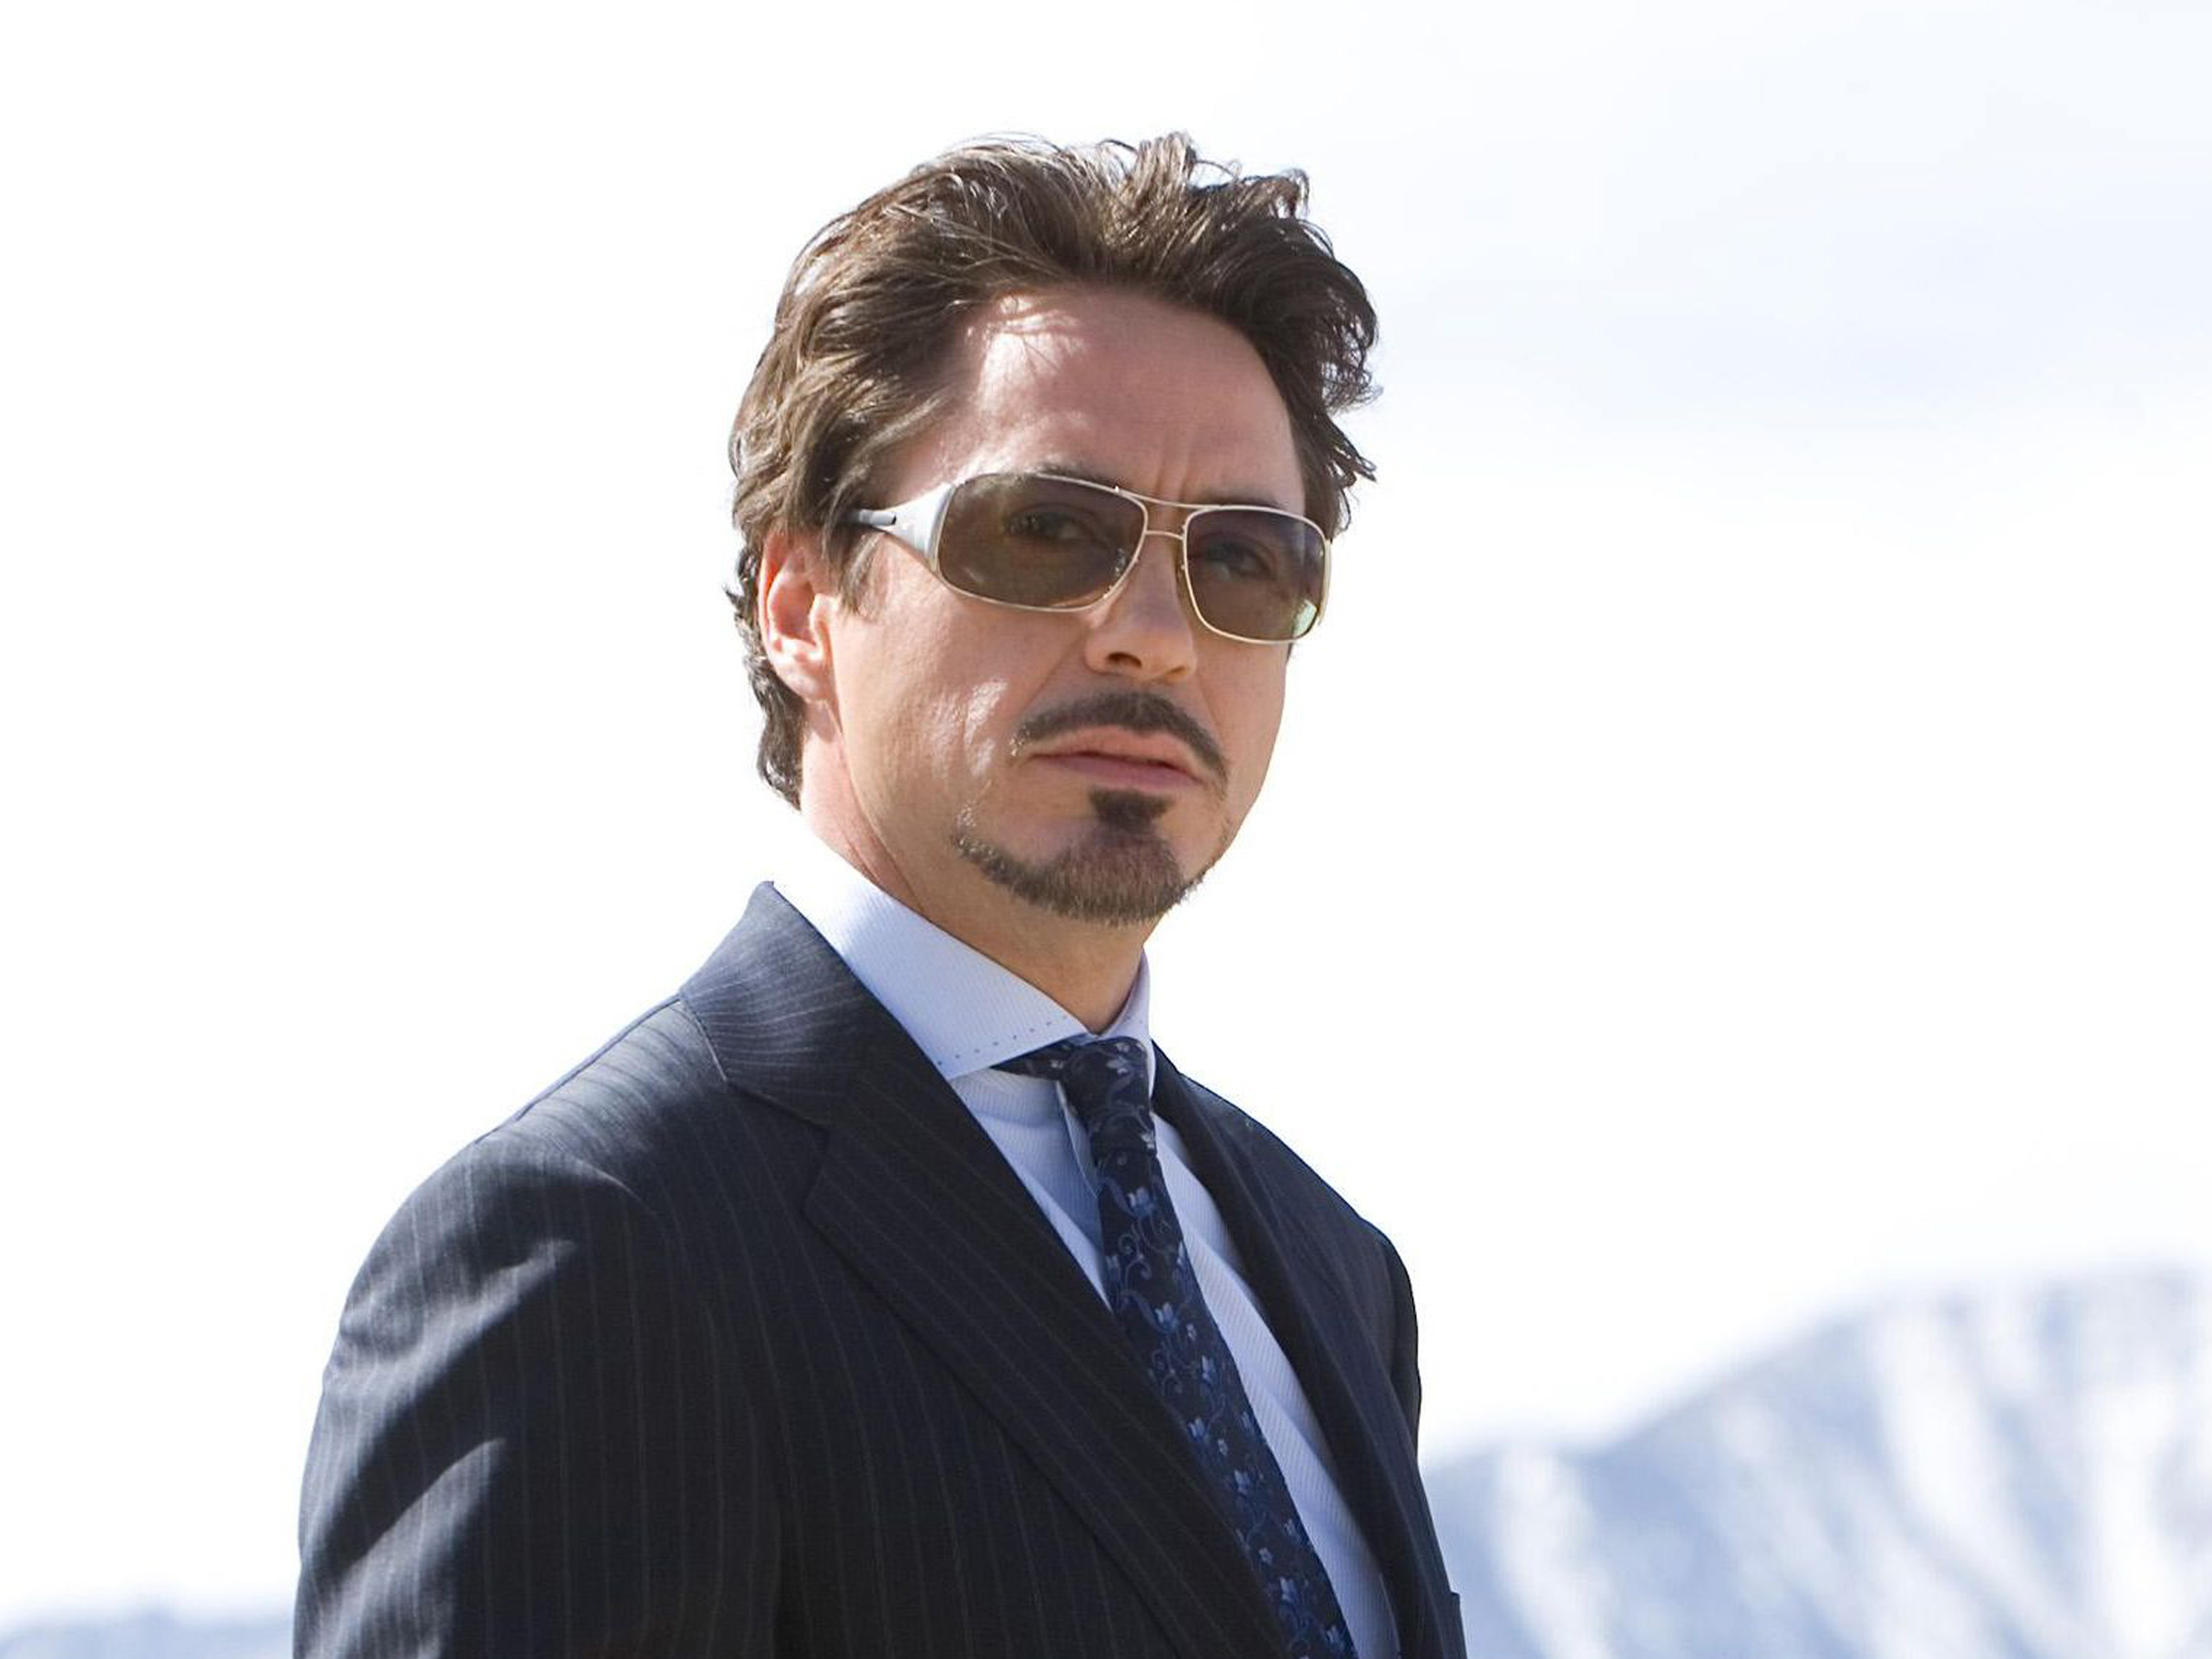 robert downey jr photo - photo #17